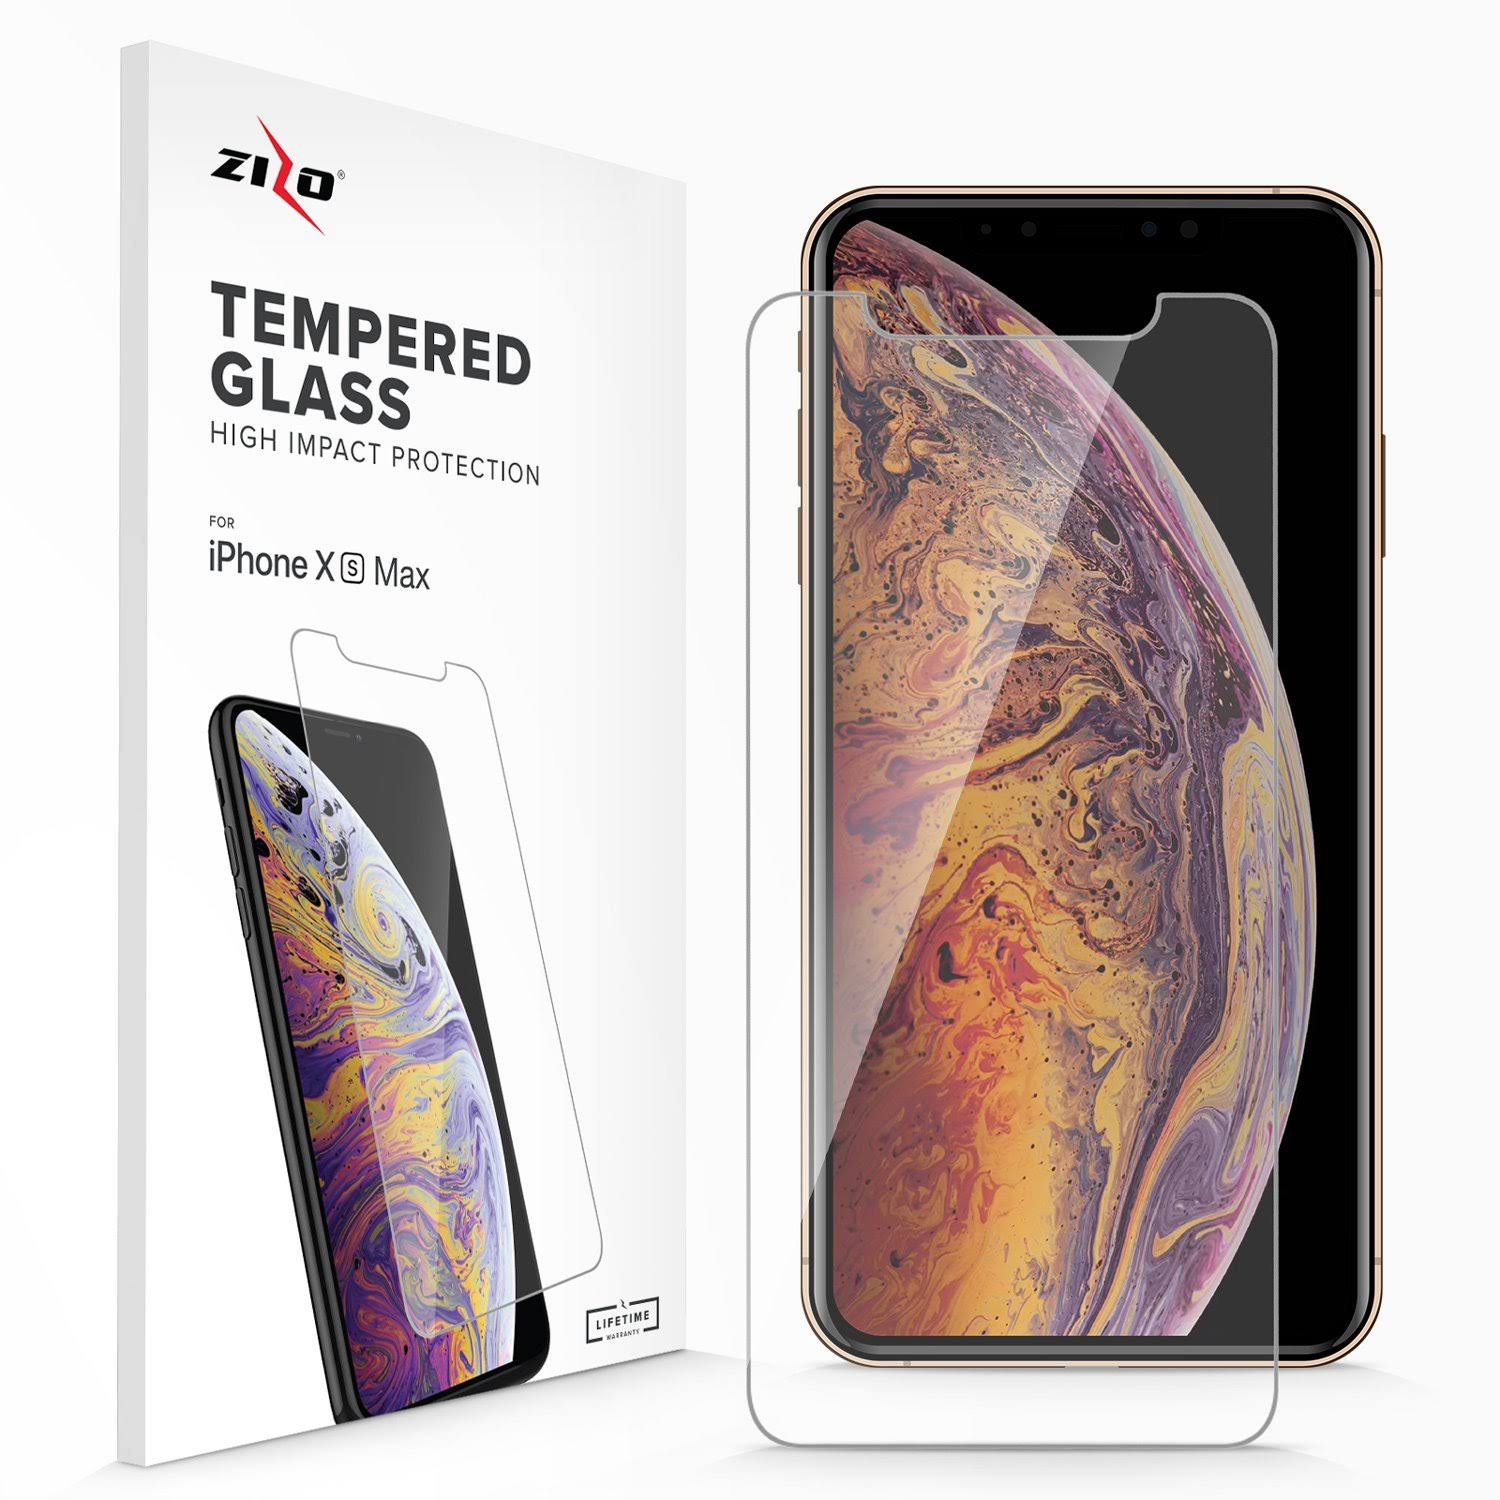 Zizo iPhone XS Max Lightning Shield Tempered Glass Screen Protector